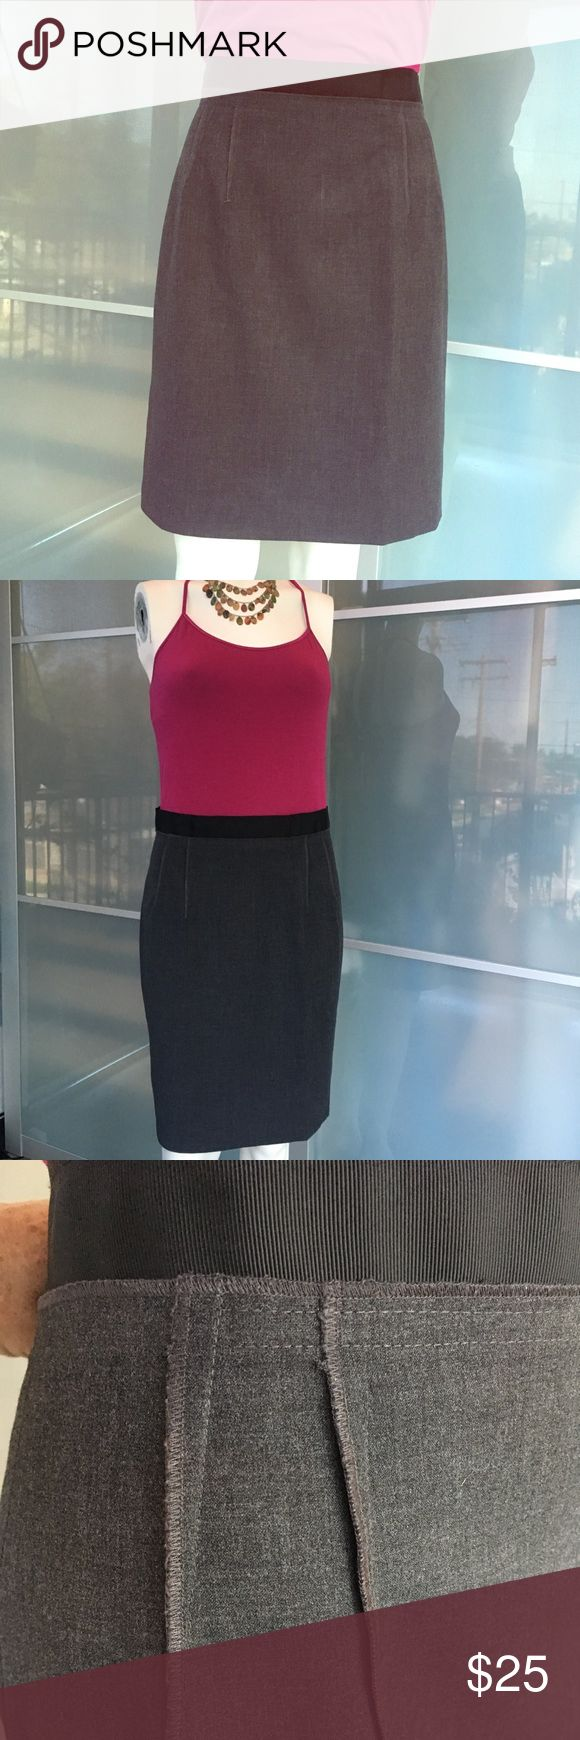 Ann Taylor Loft skirt This crisply tailored skirt has smart darting at the sides and an attractive back zipper. The feminine grosgrain ribbon waistband is a nice touch. Perfect for the office. Fully lined. Size 4, waist 30, length 21. Ann Taylor Skirts Pencil